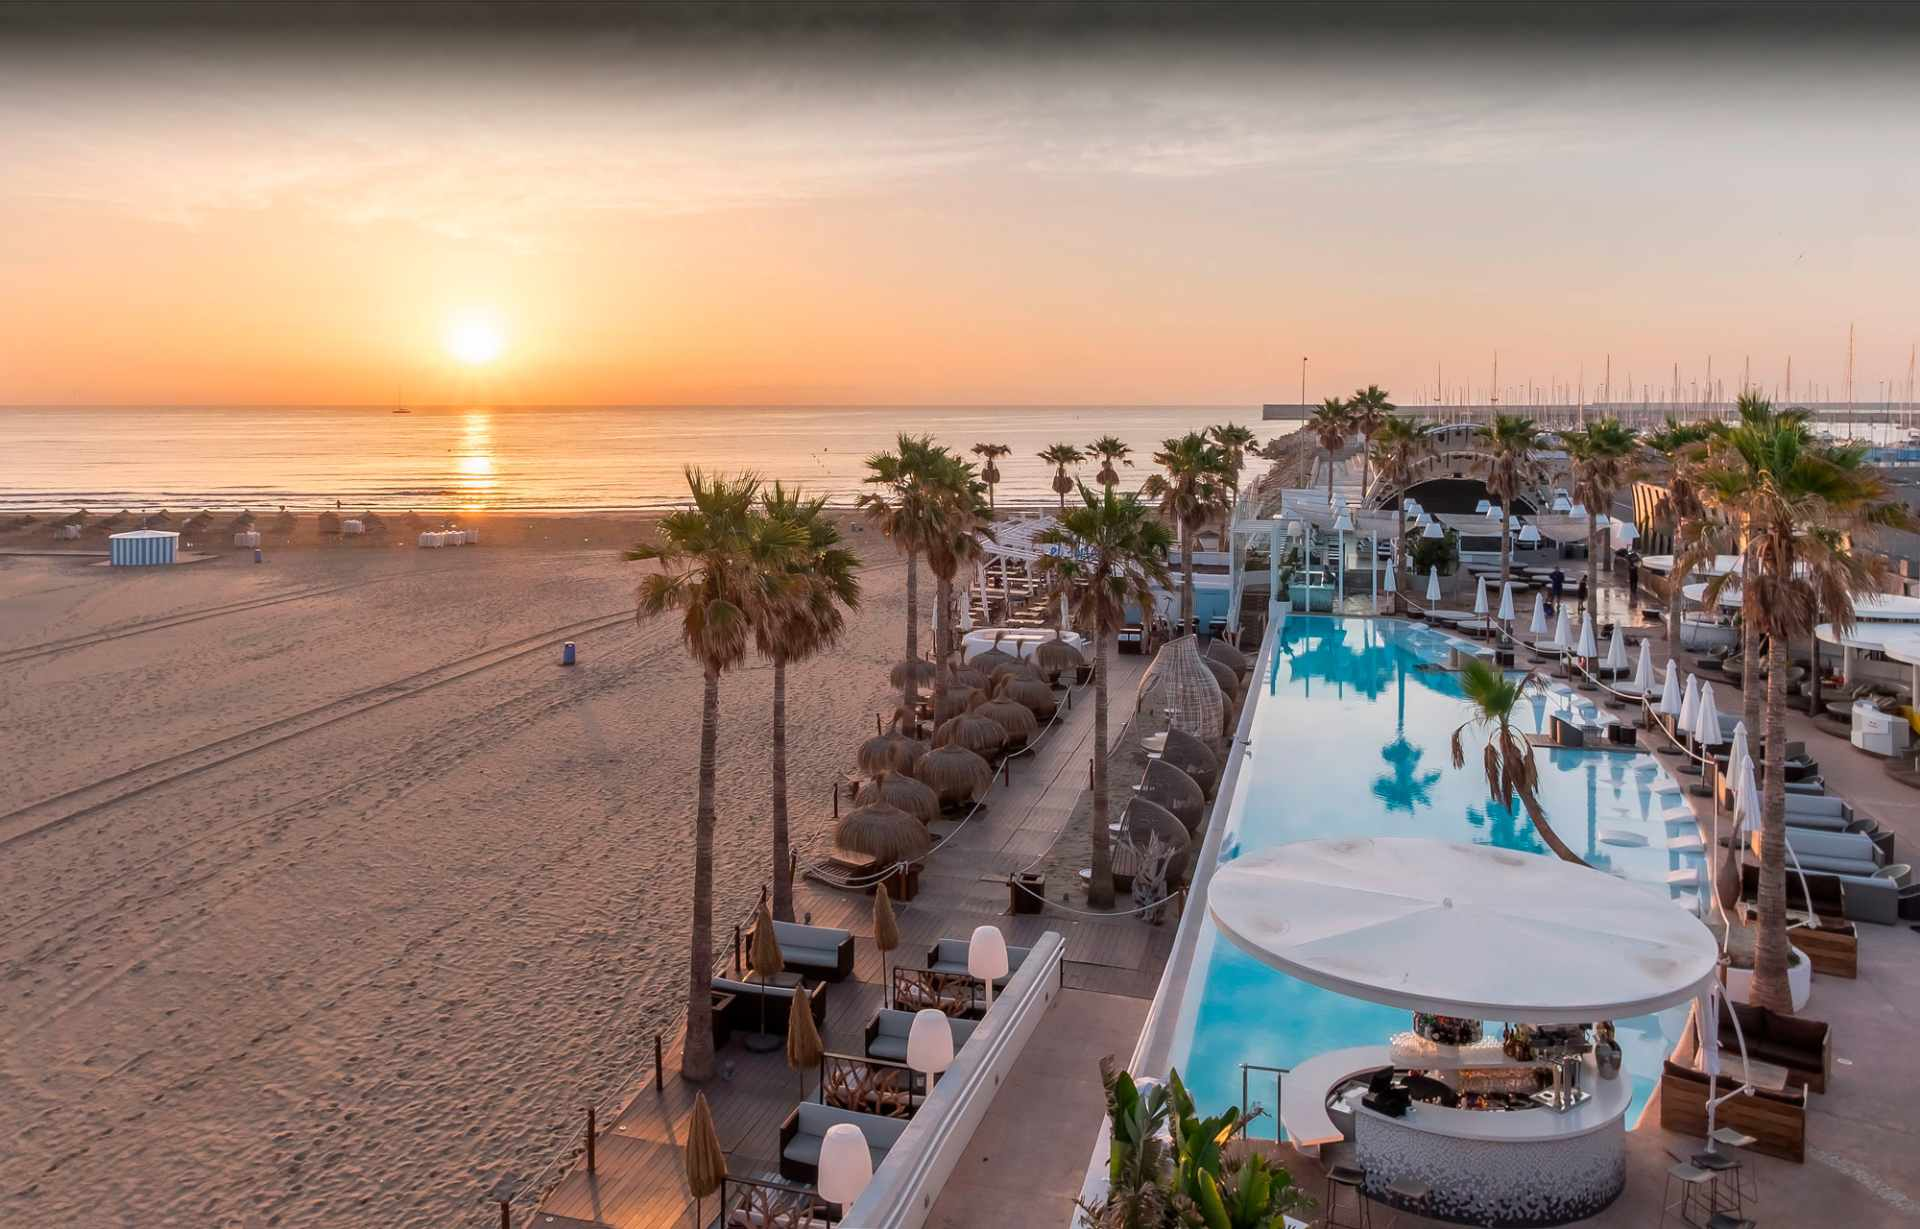 marina-beach-club-with-pool-at-sunset-2-days-in-valencia-itinerary